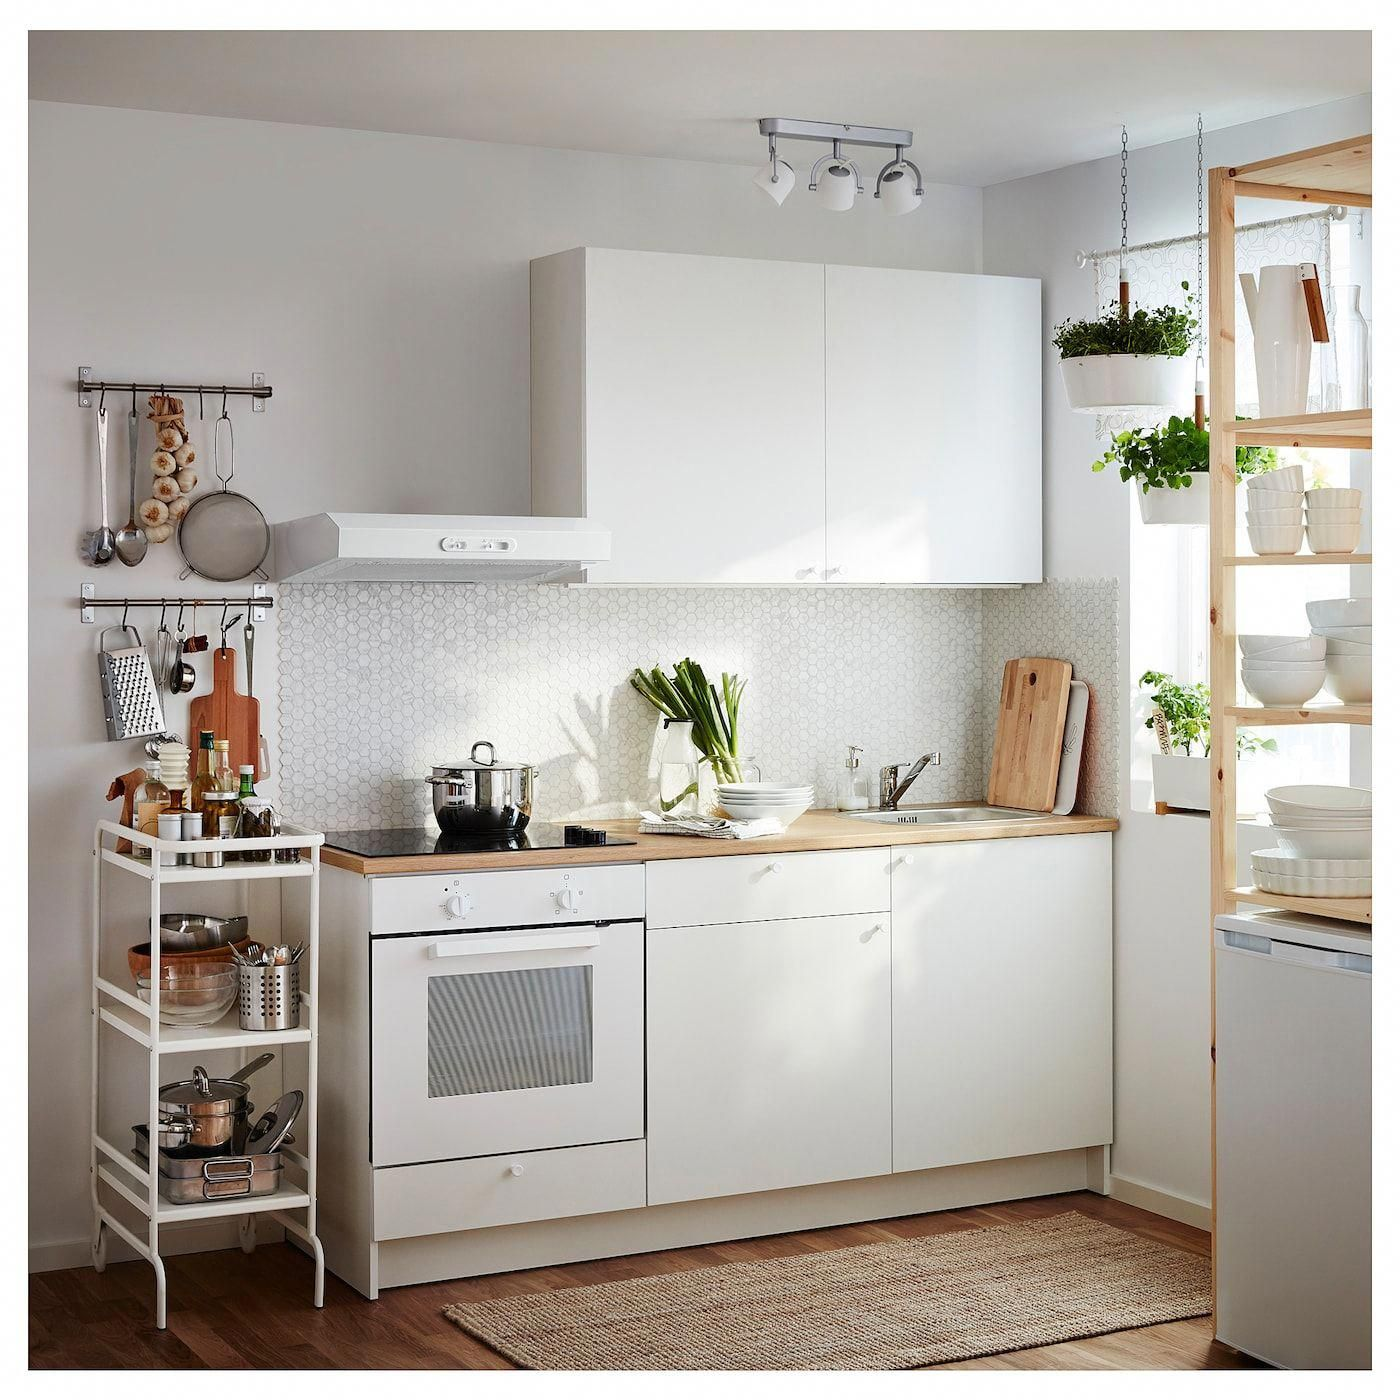 Knoxhult Base Cabinet With Doors And Drawer White Countertop Length 72 3 8 Ikea Kitchen Trends Apartment Kitchen Minimalist Kitchen